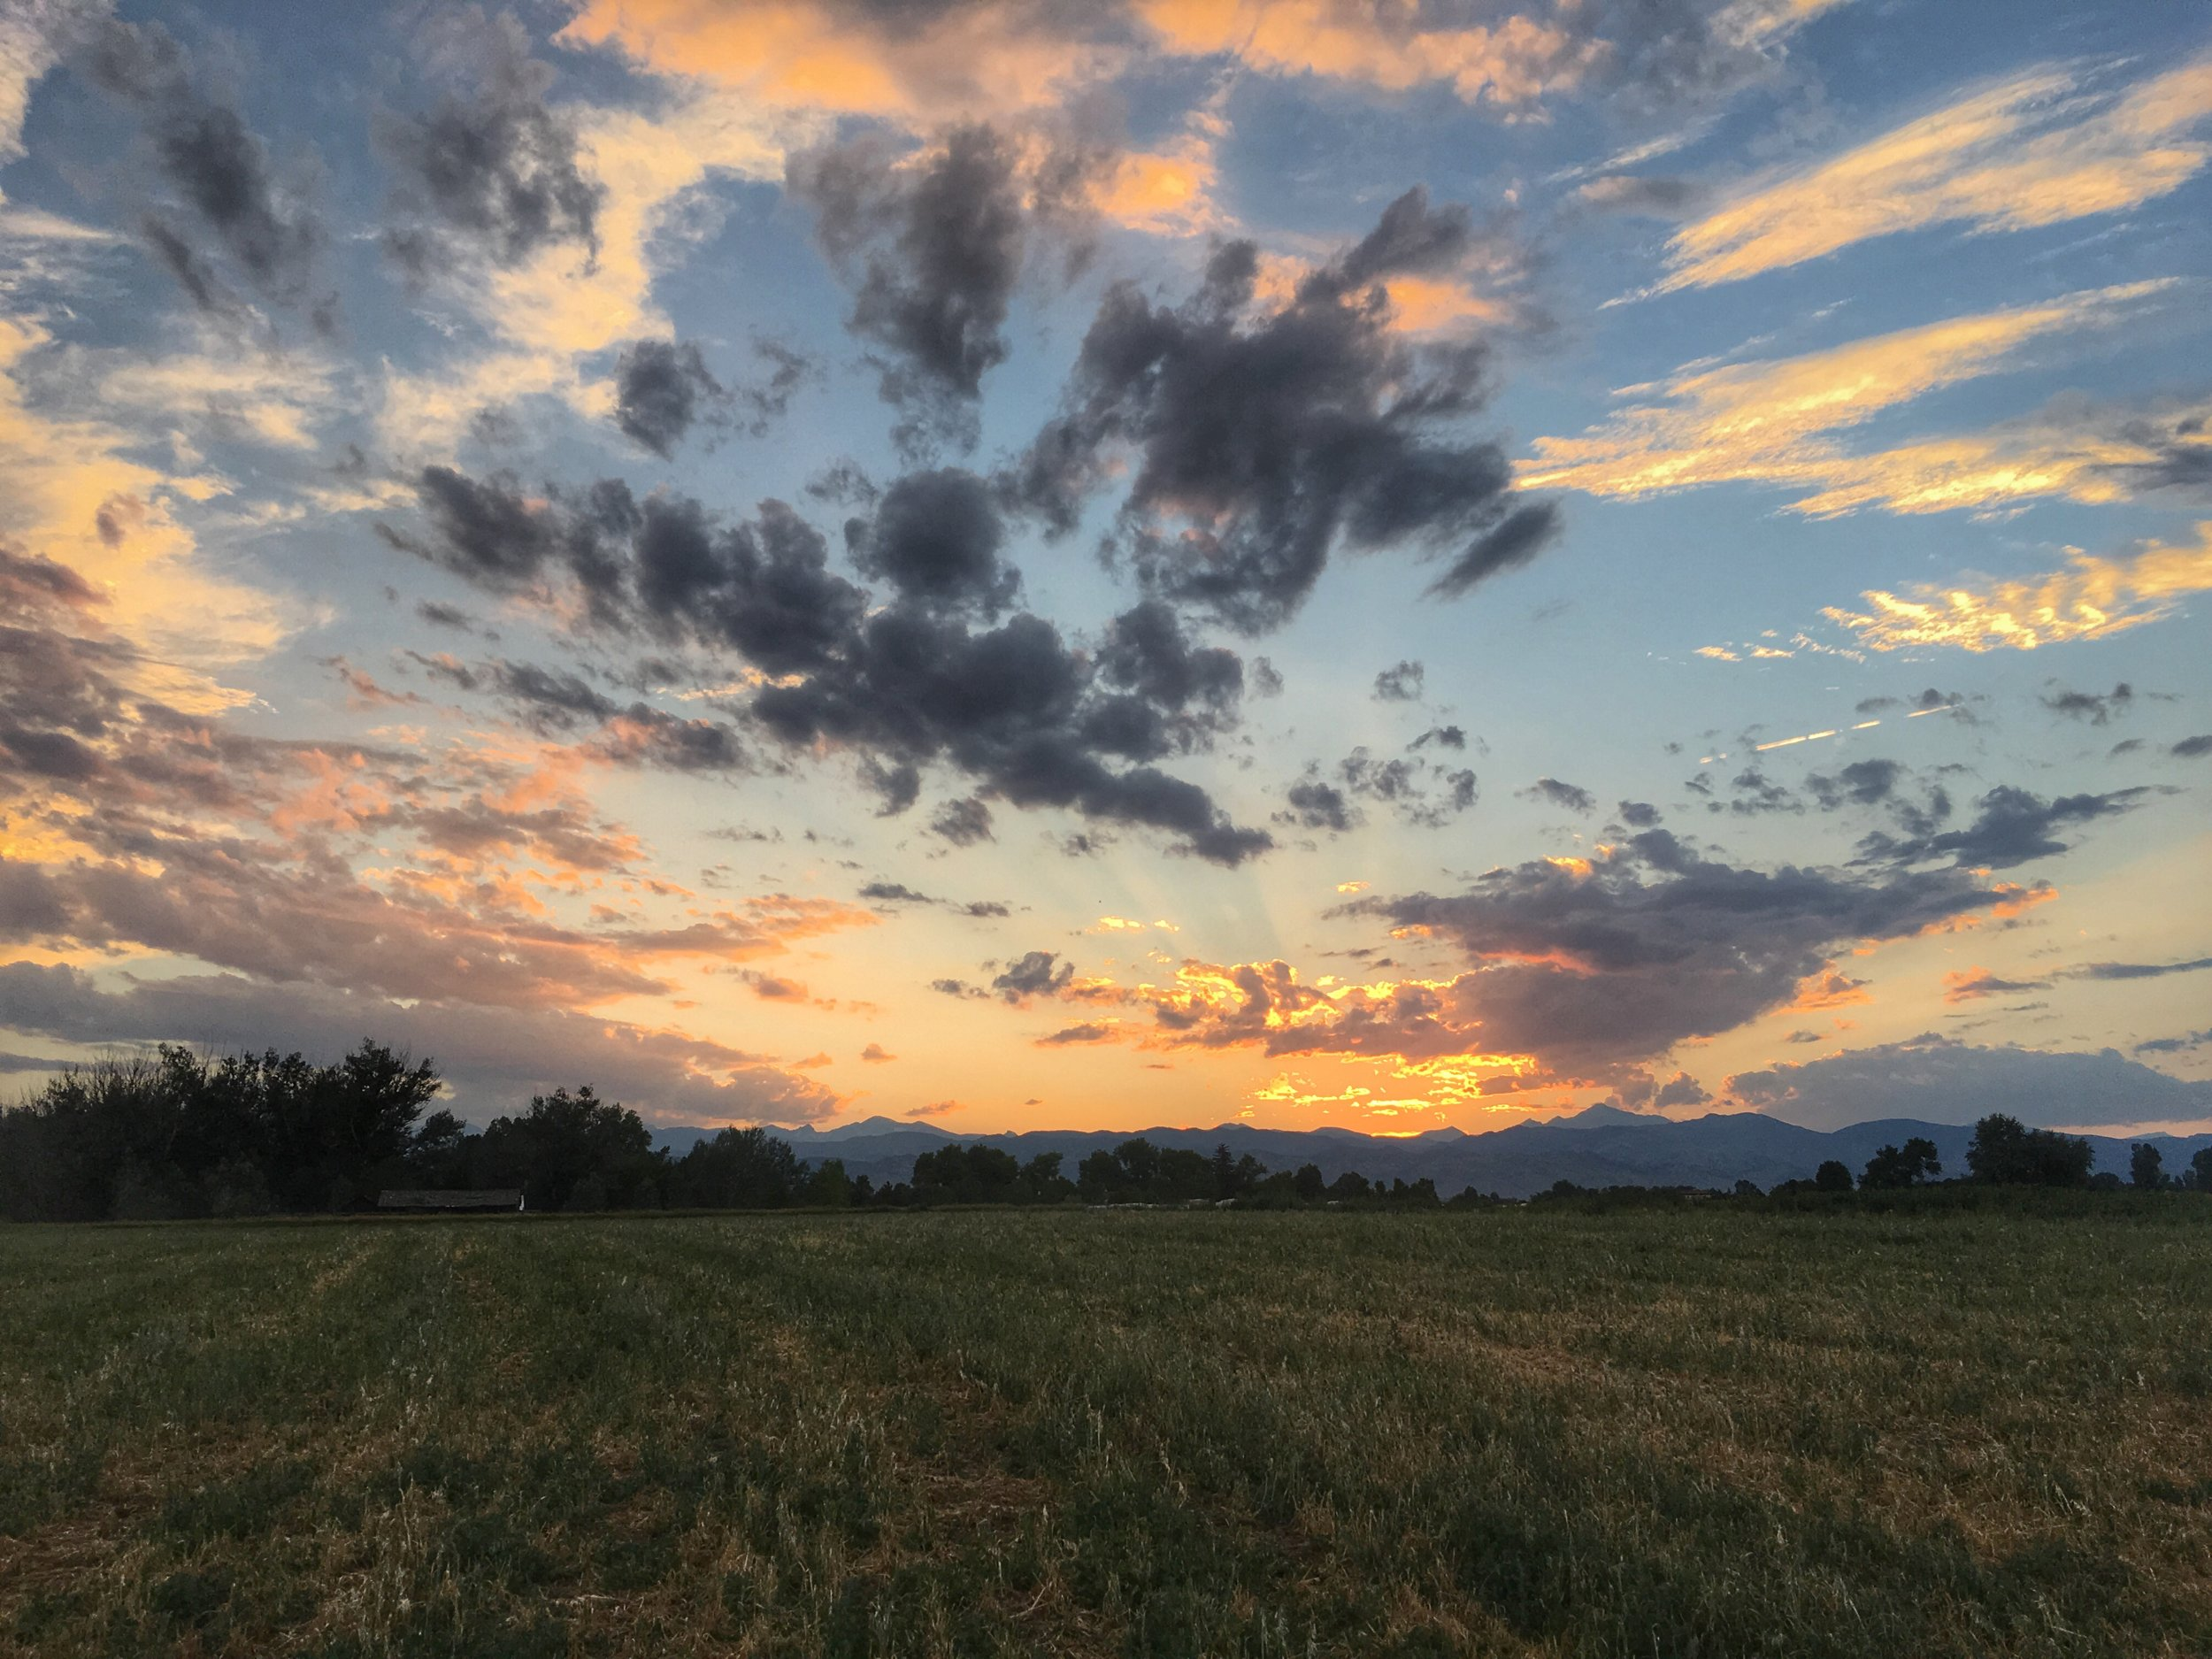 Sunset over the Rocky Mountains. Boulder County, Colorado, USA. July 22, 2017.